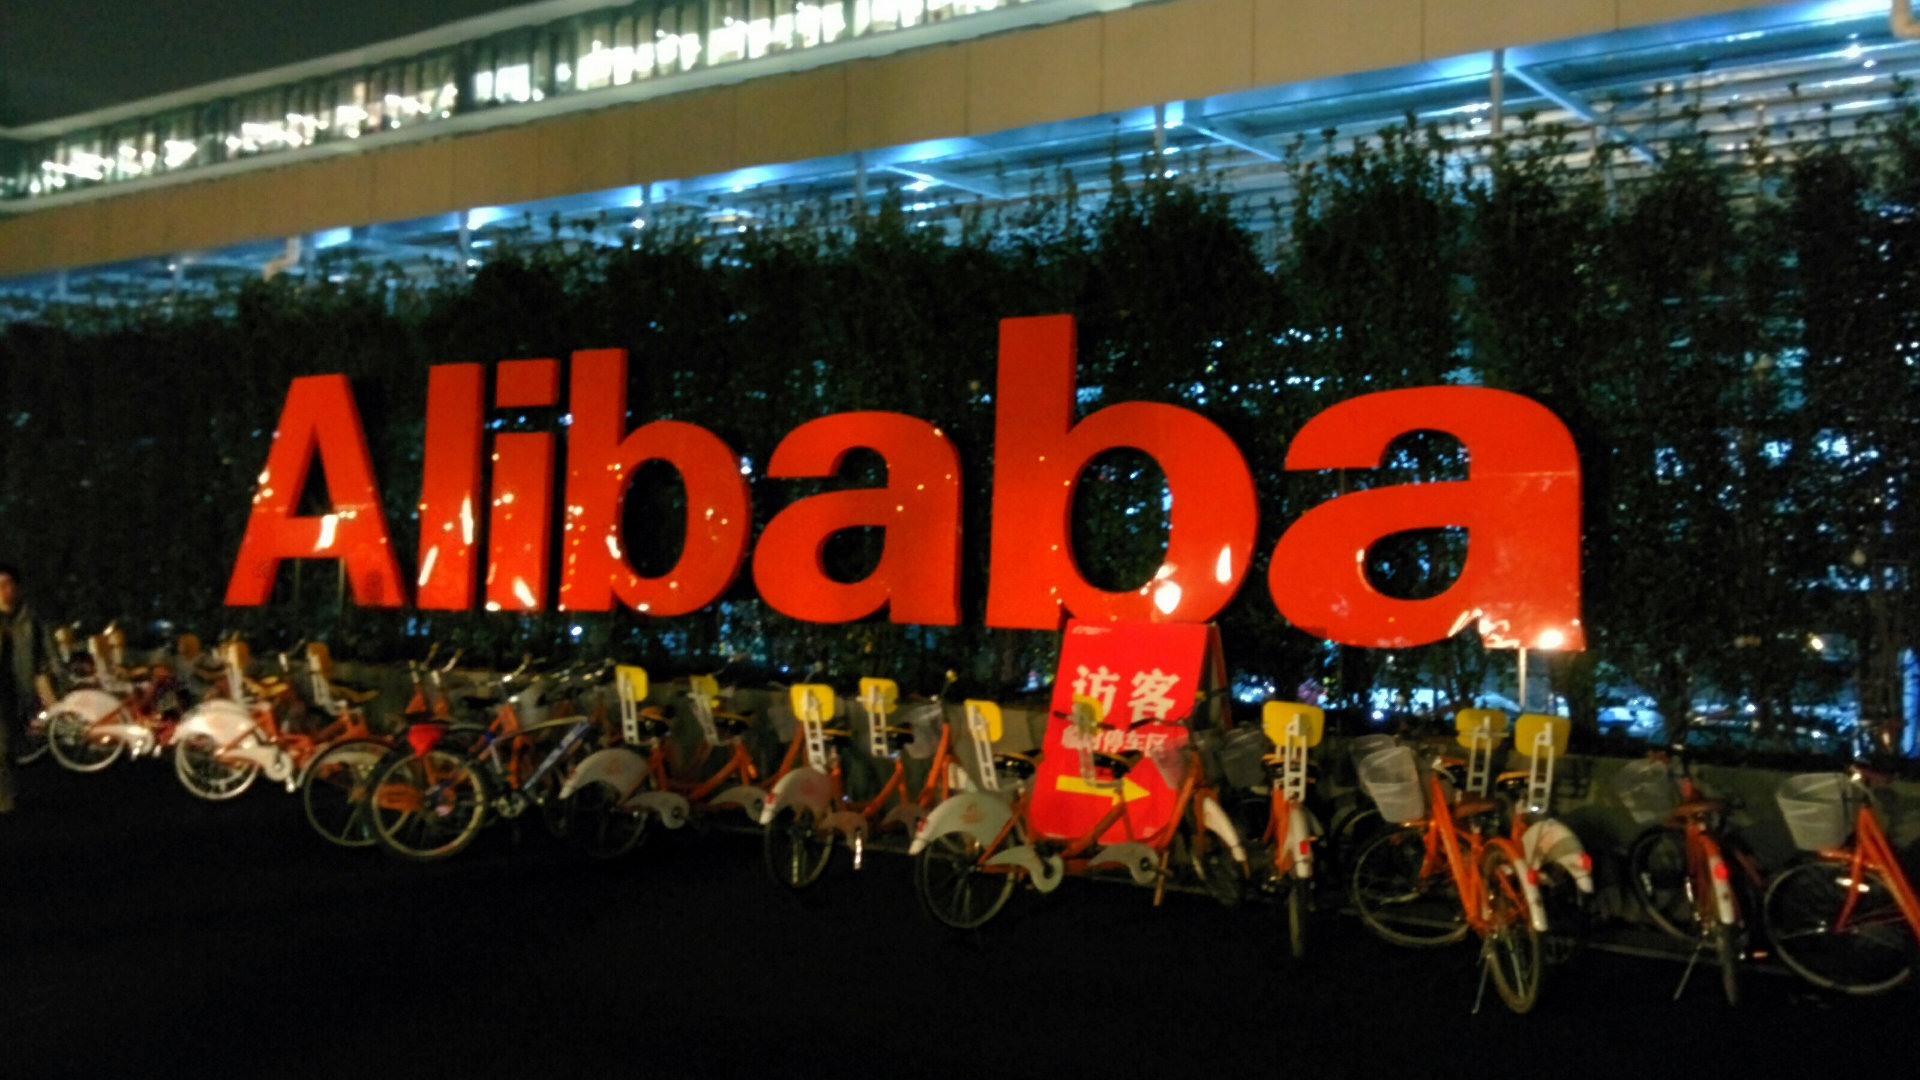 China's #Alibaba amps up its online entertainment push with BMG deal (Internet Retailer)